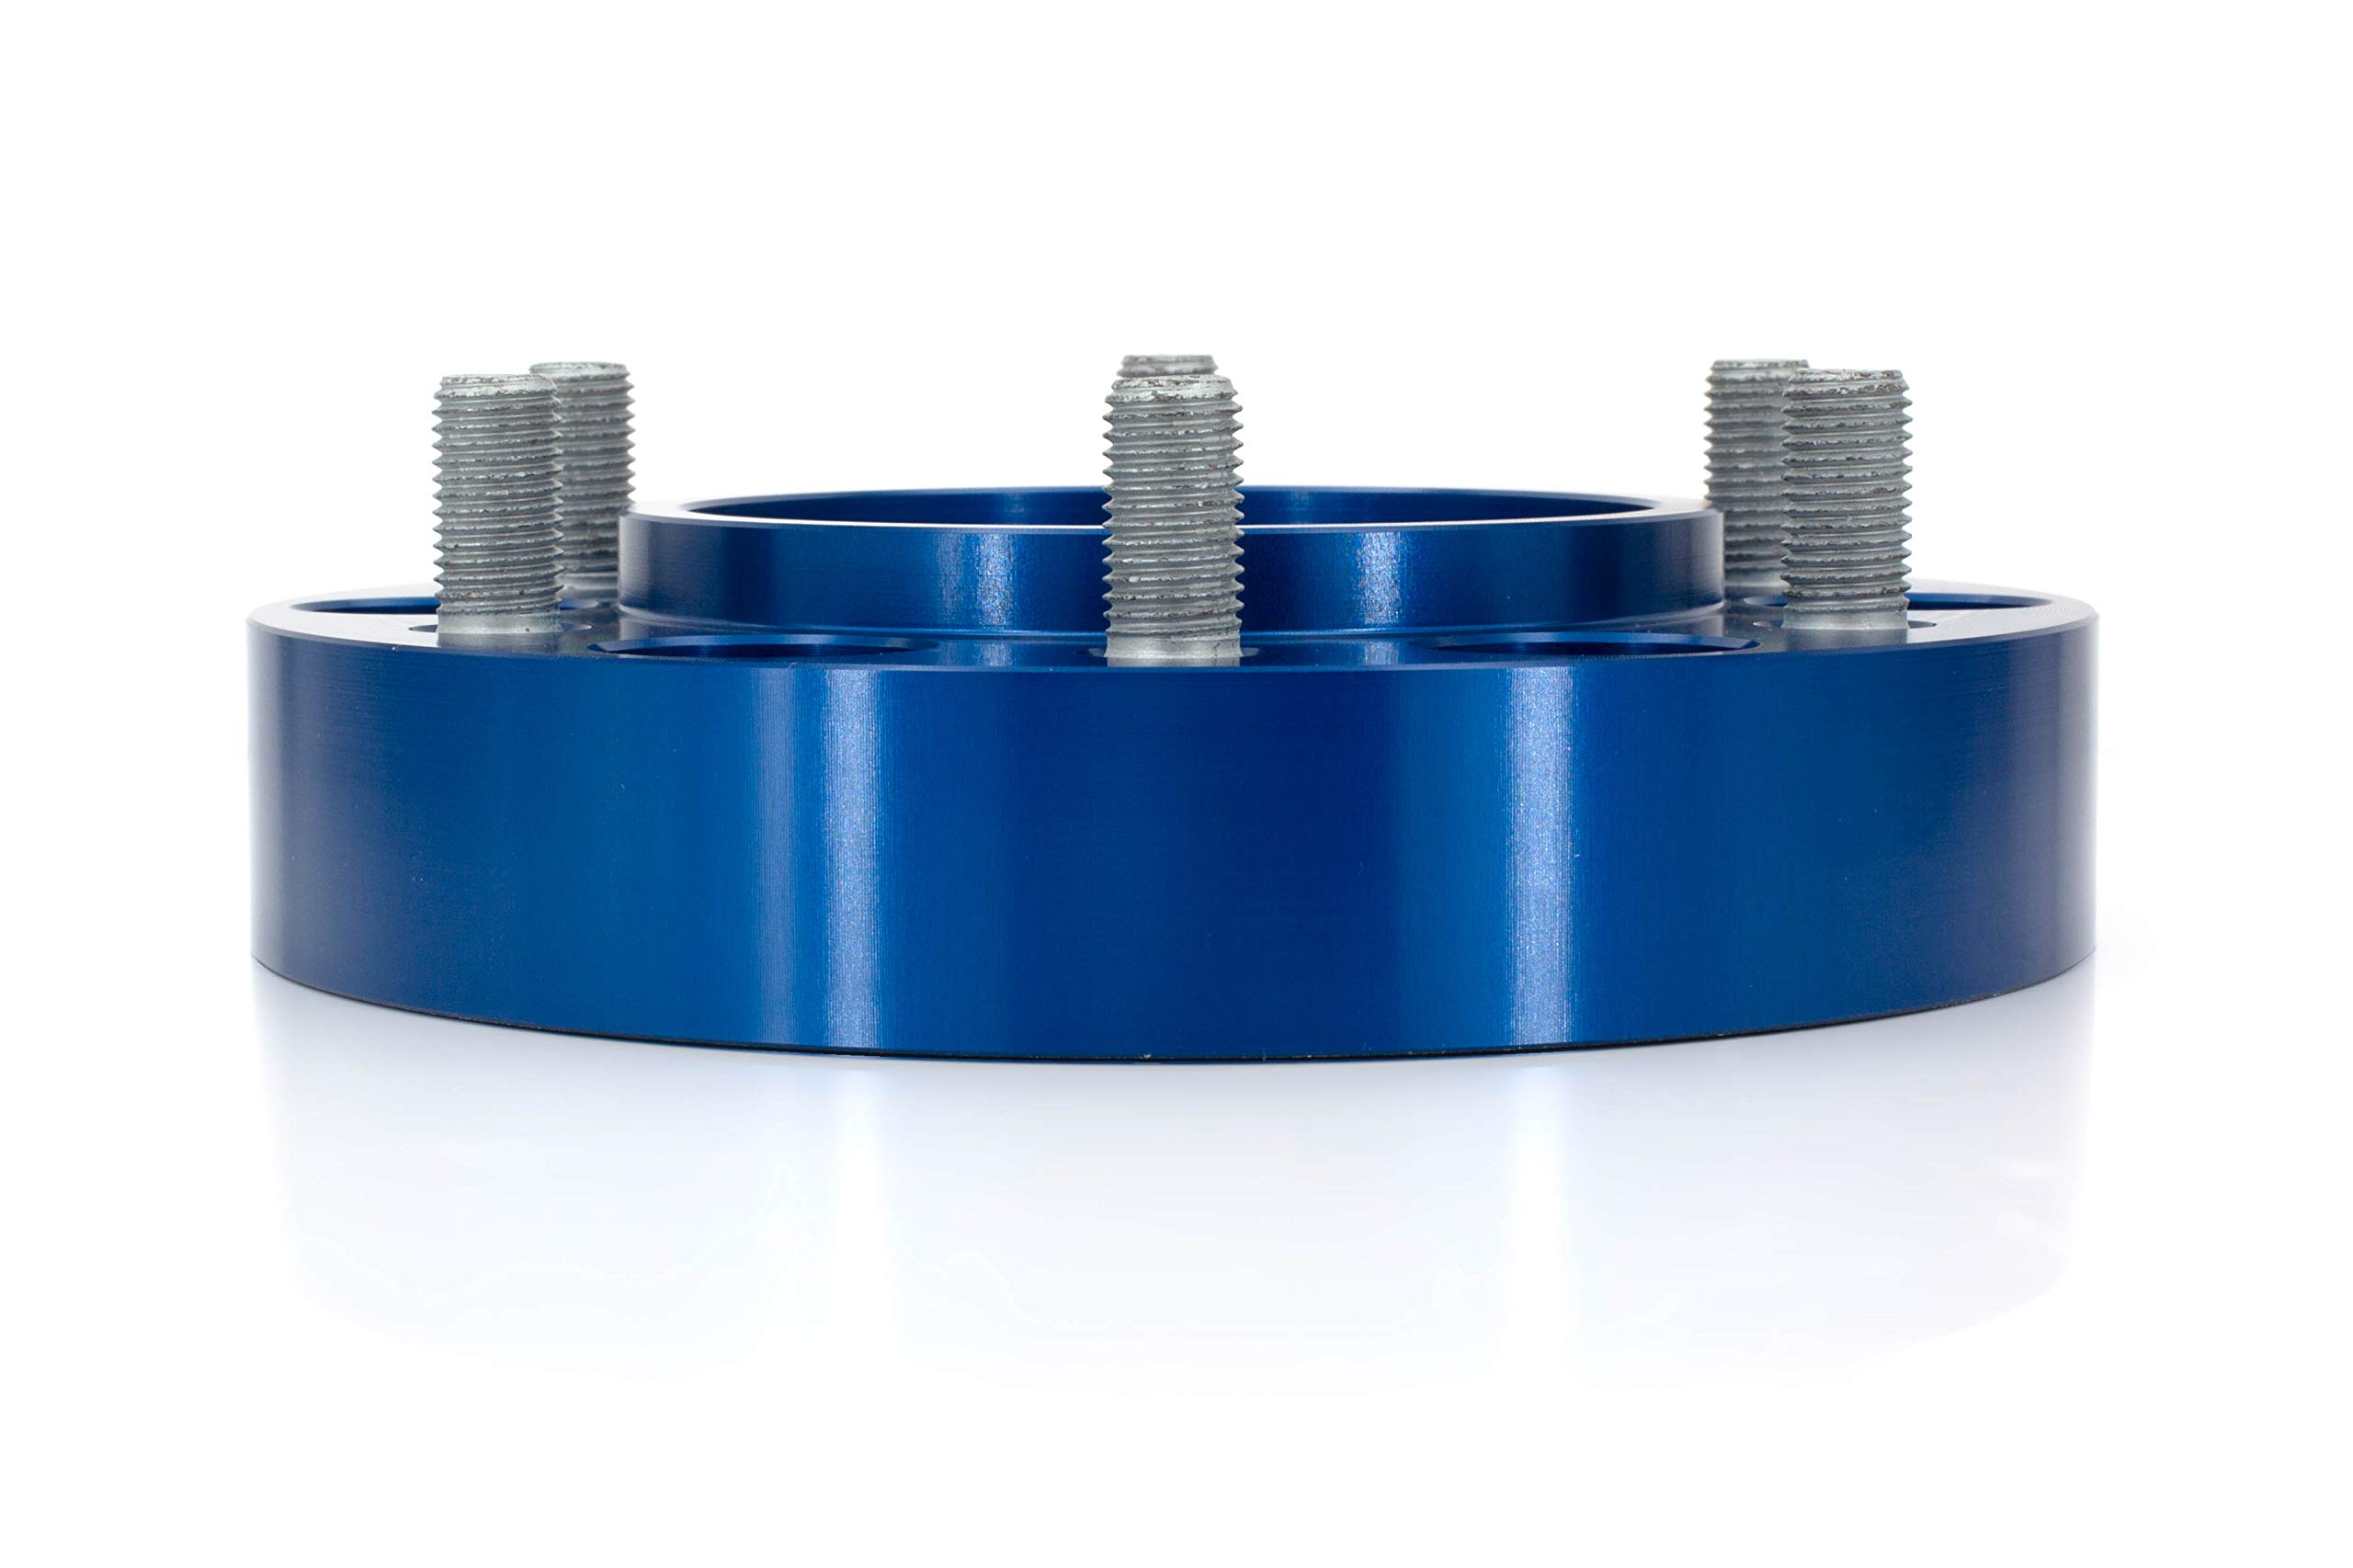 Spidertrax WHS007 Blue Wheel Spacer Kit